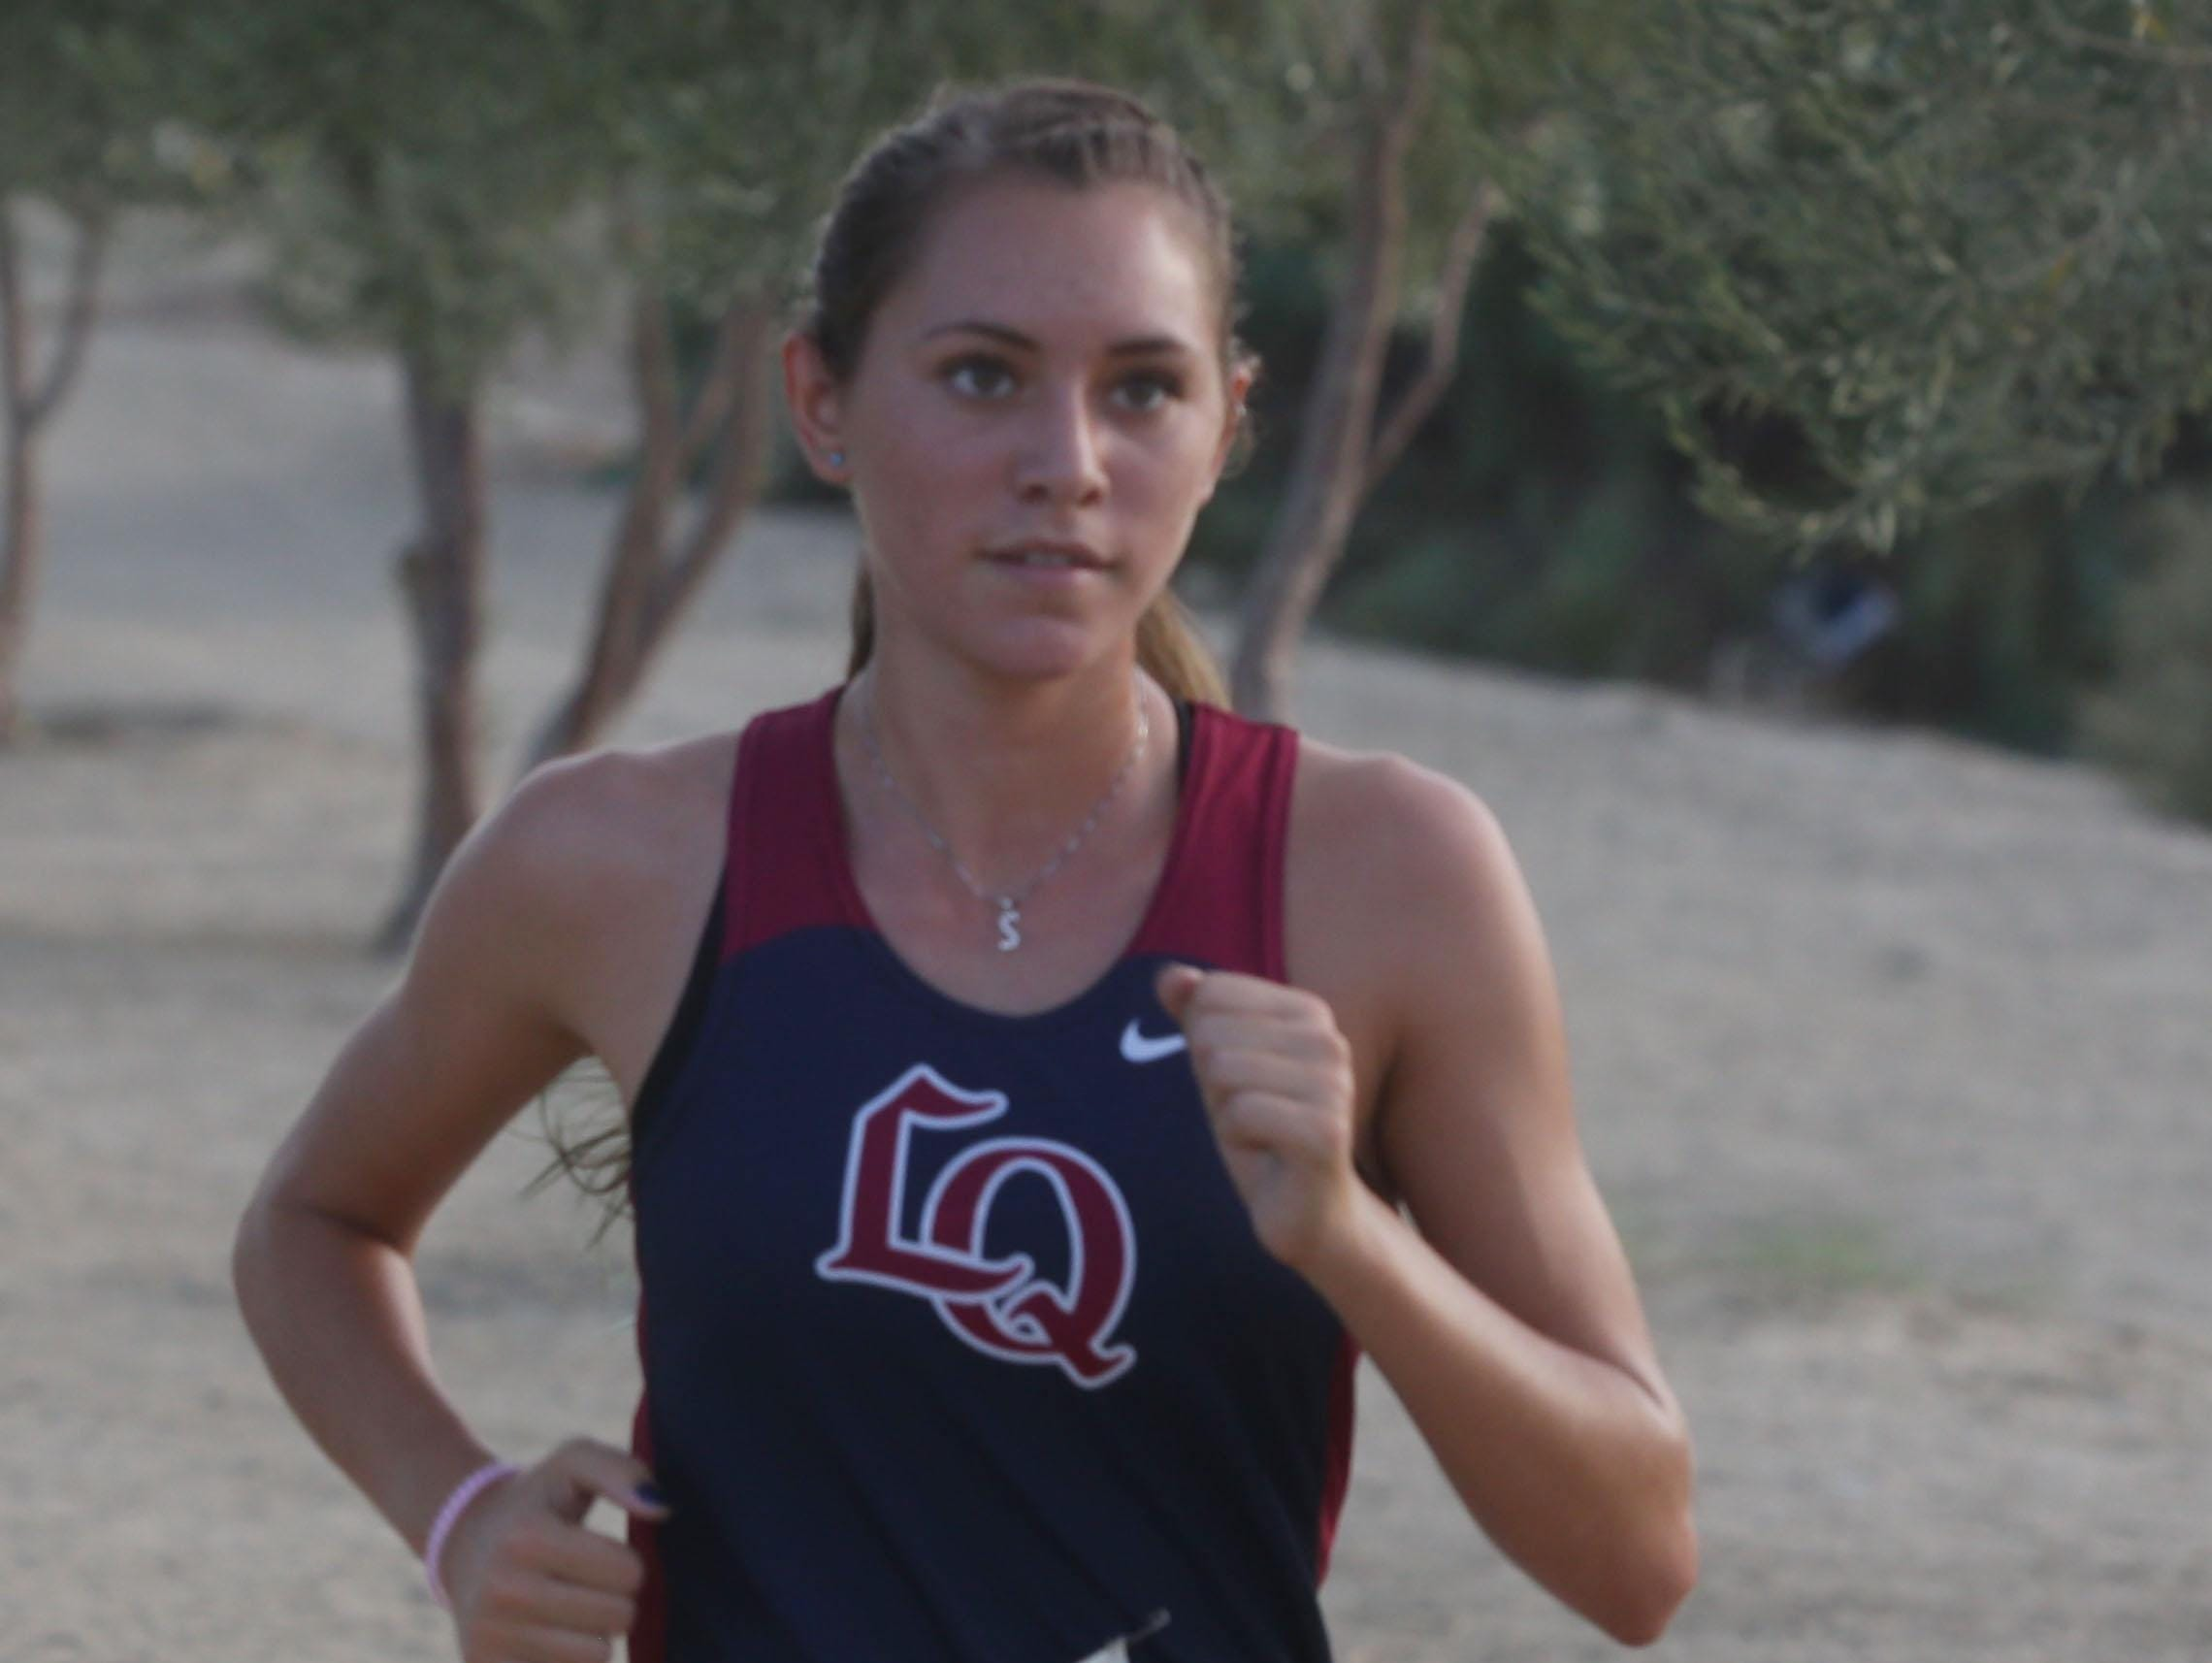 Sandra Flores of La Quinta High School won the girl's cross country race at Xavier Prep on October 14, 2015.